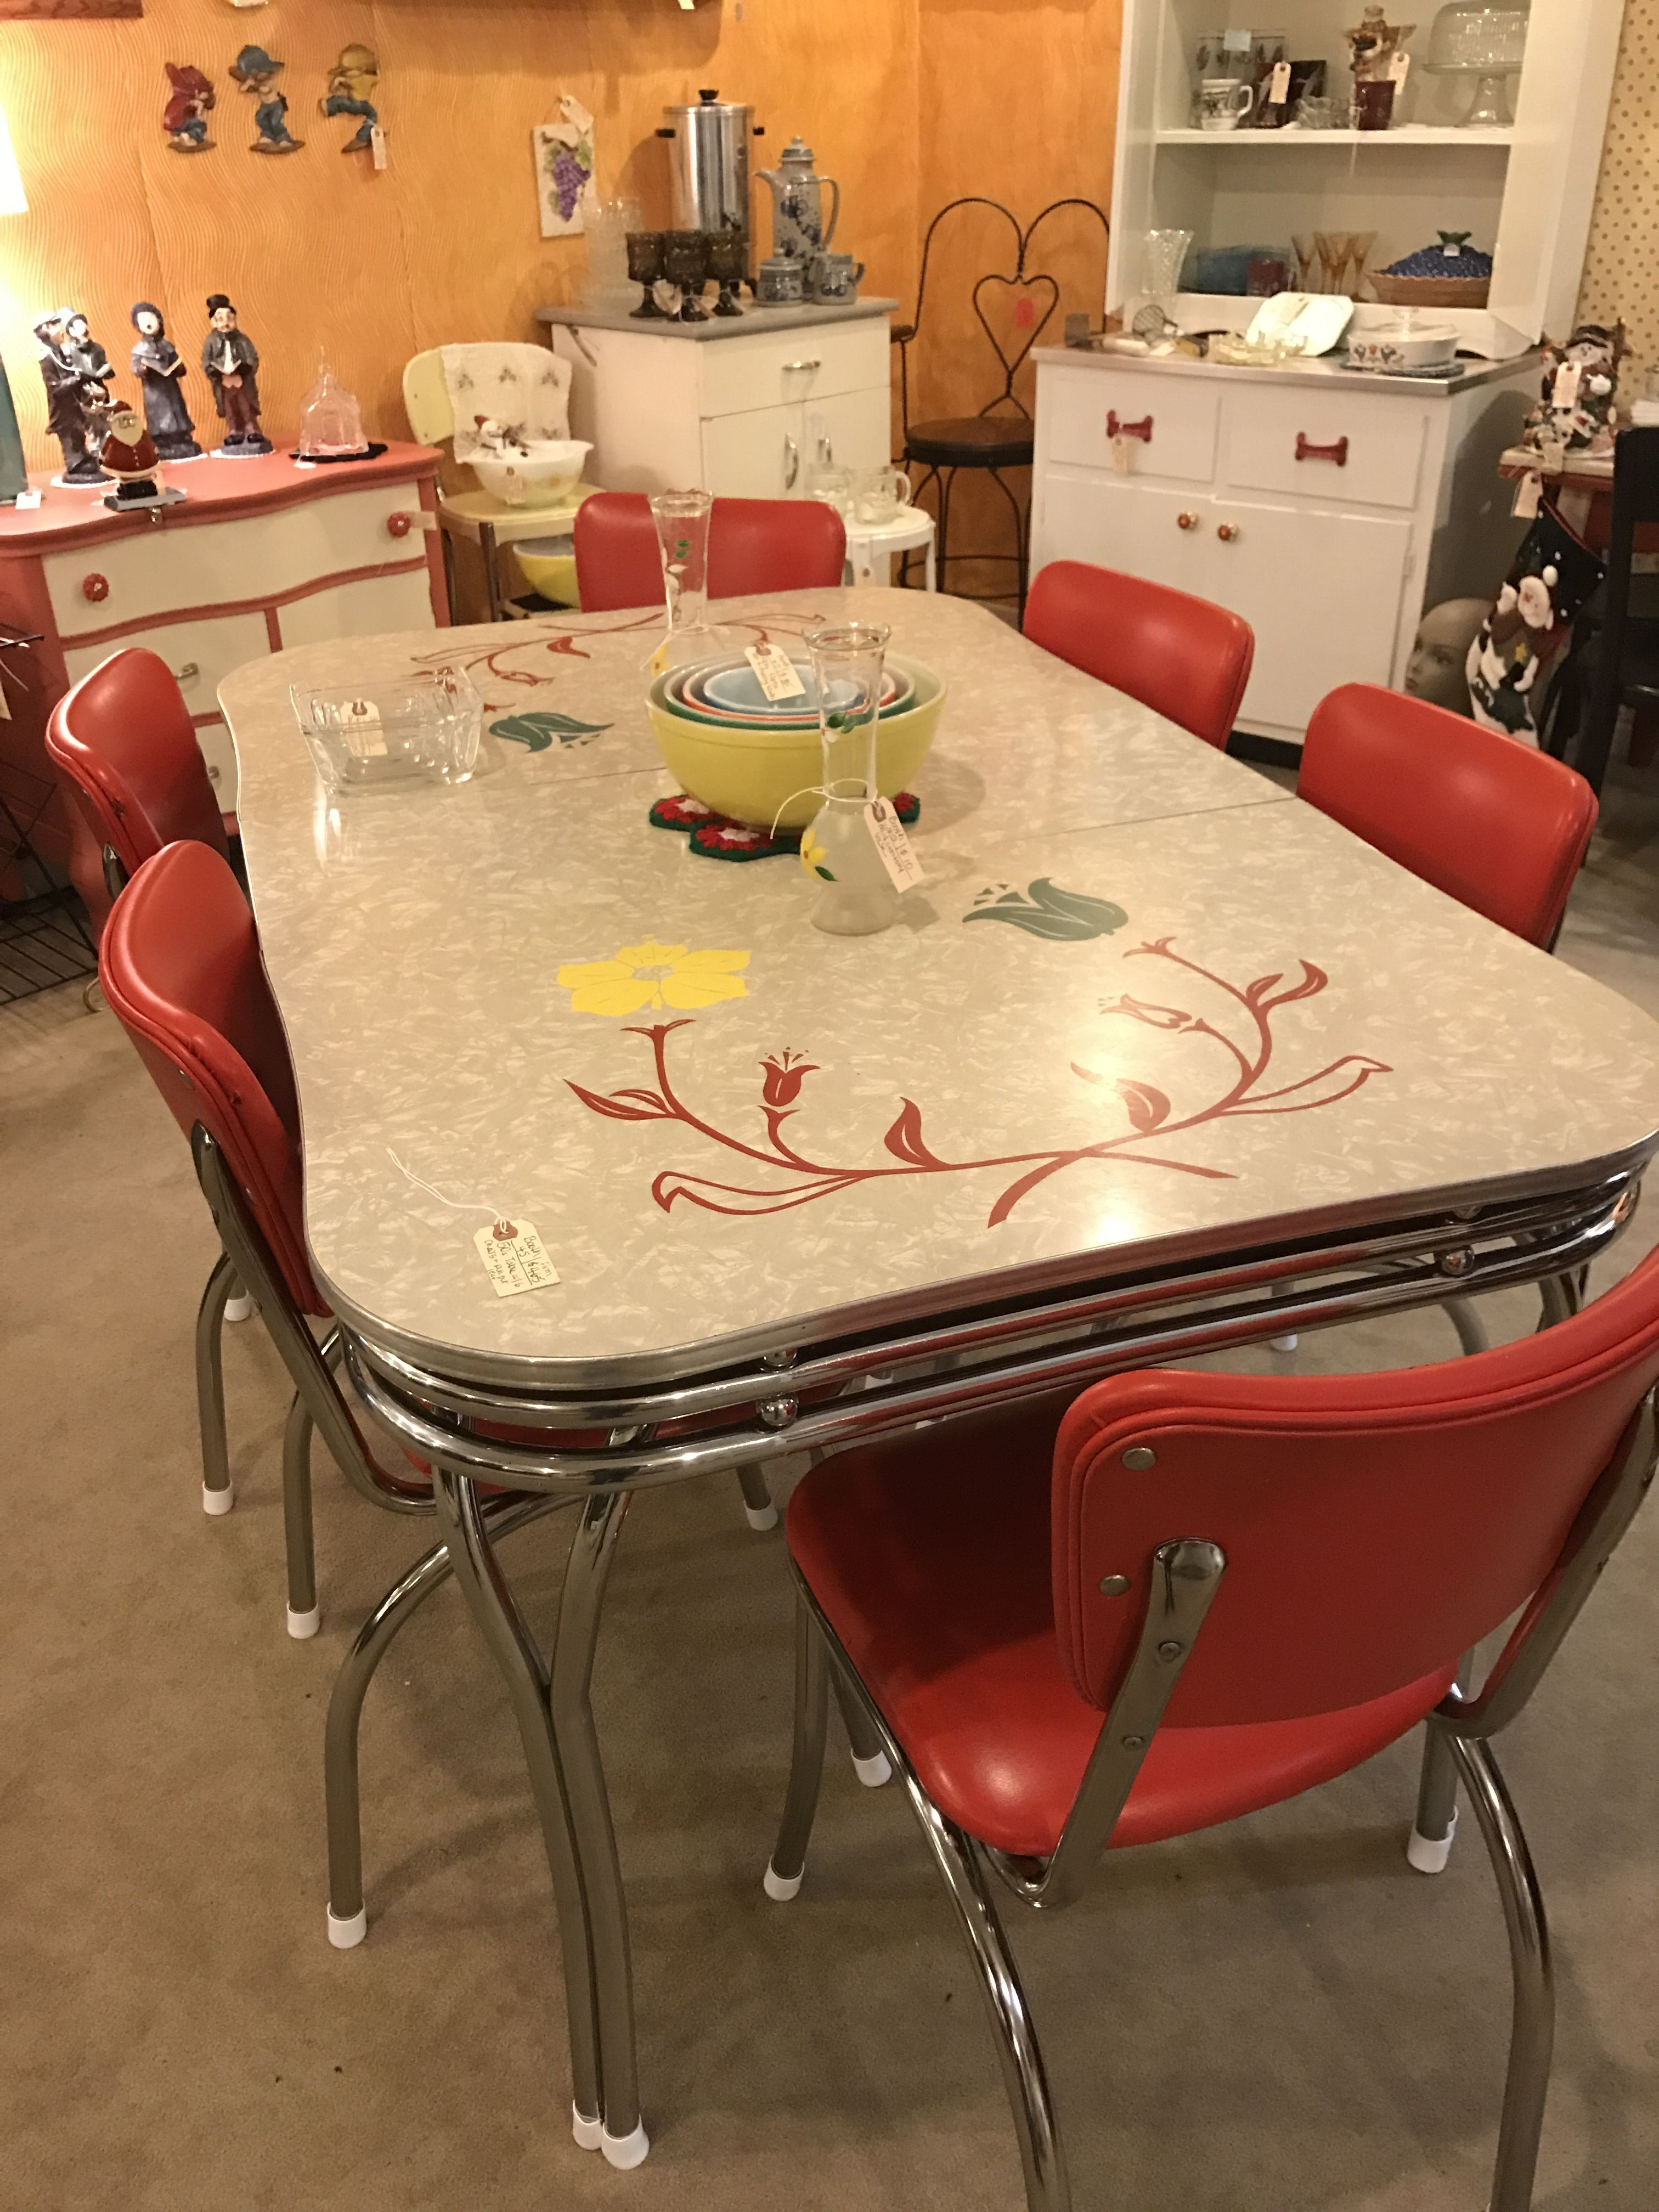 21 Marvelous Furniture Kitchen Vintage That Will Make Your Home Look Fantastic Retro Kitchen Tables Vintage Kitchen Table Retro Dining Table